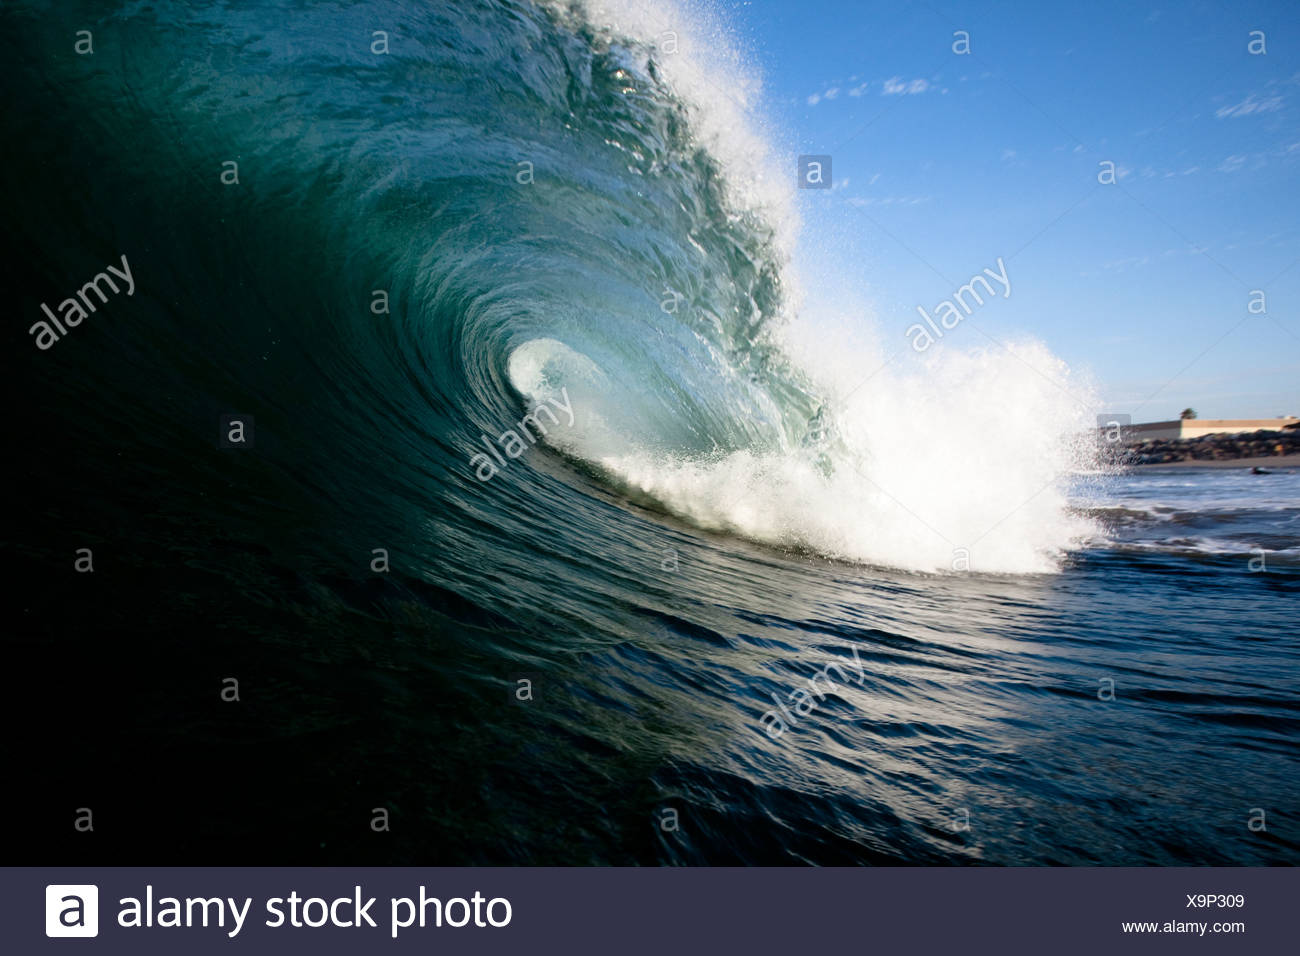 A large wave breaks close to shore. - Stock Image